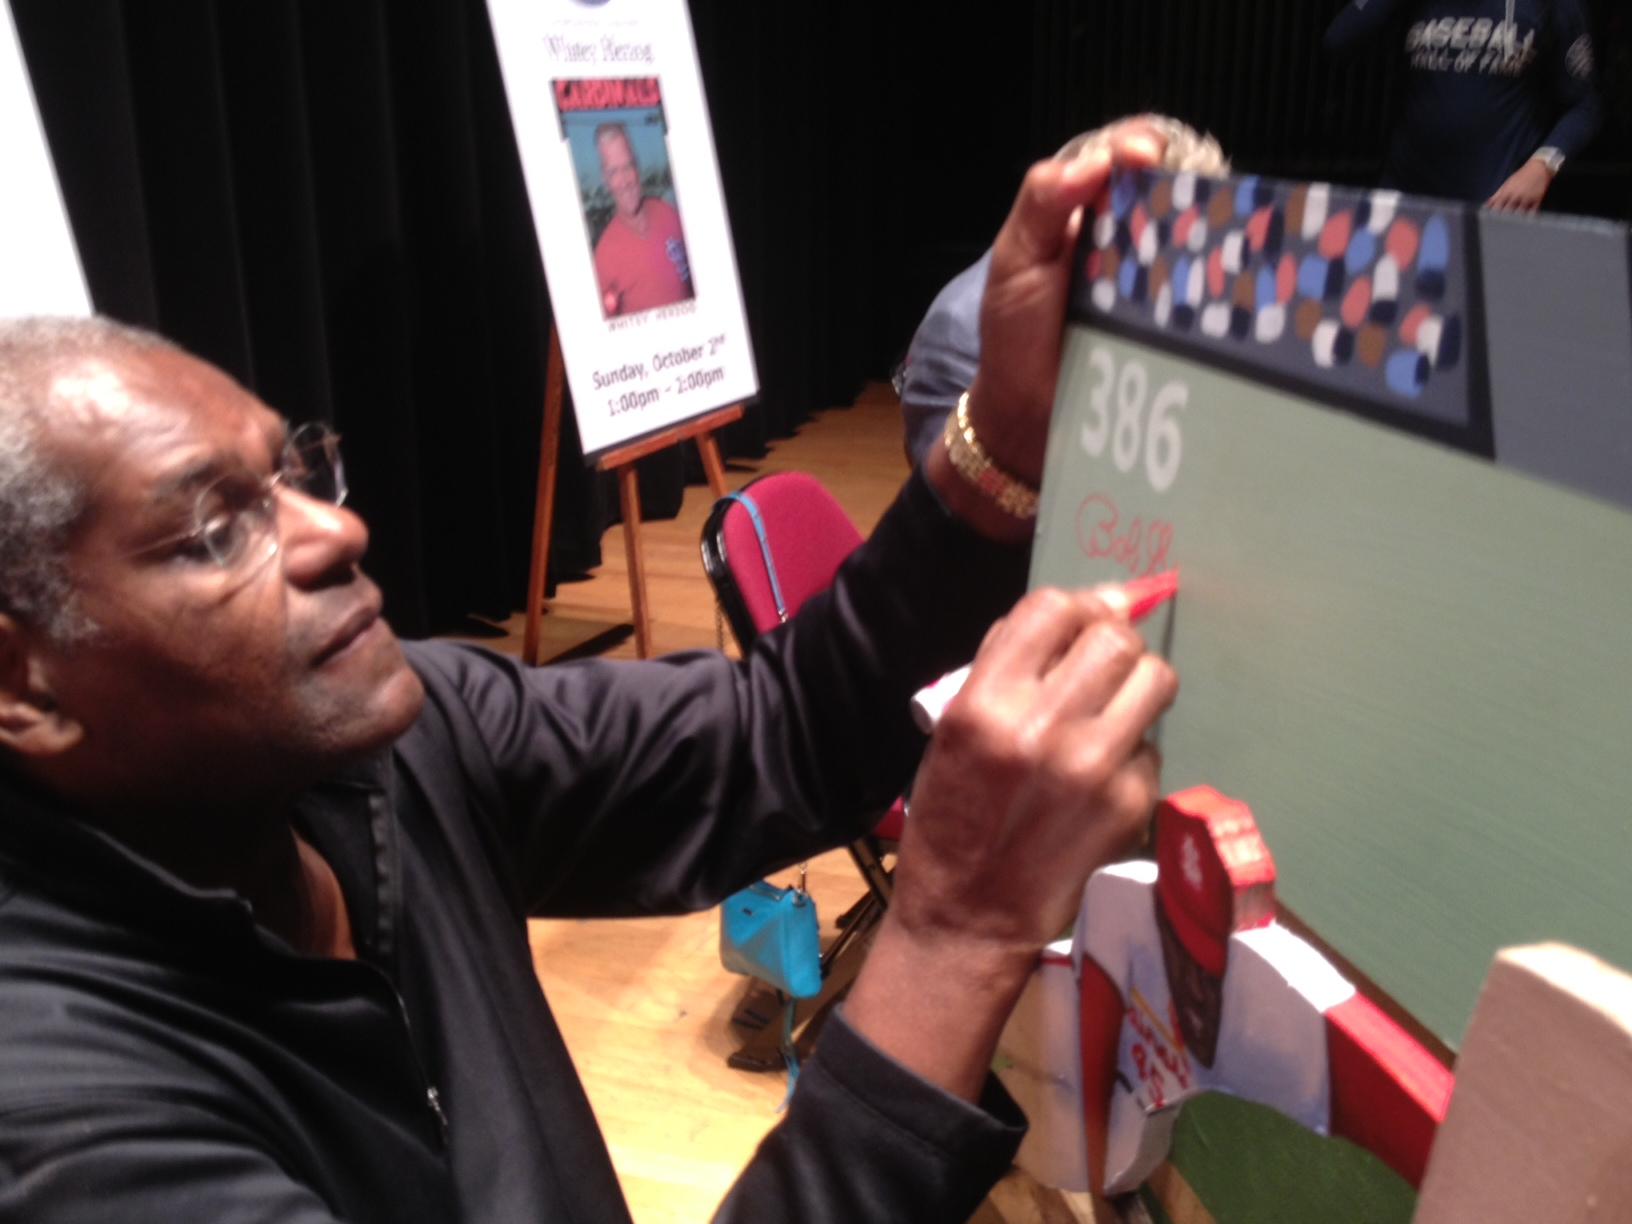 Bob Gibson signing painting